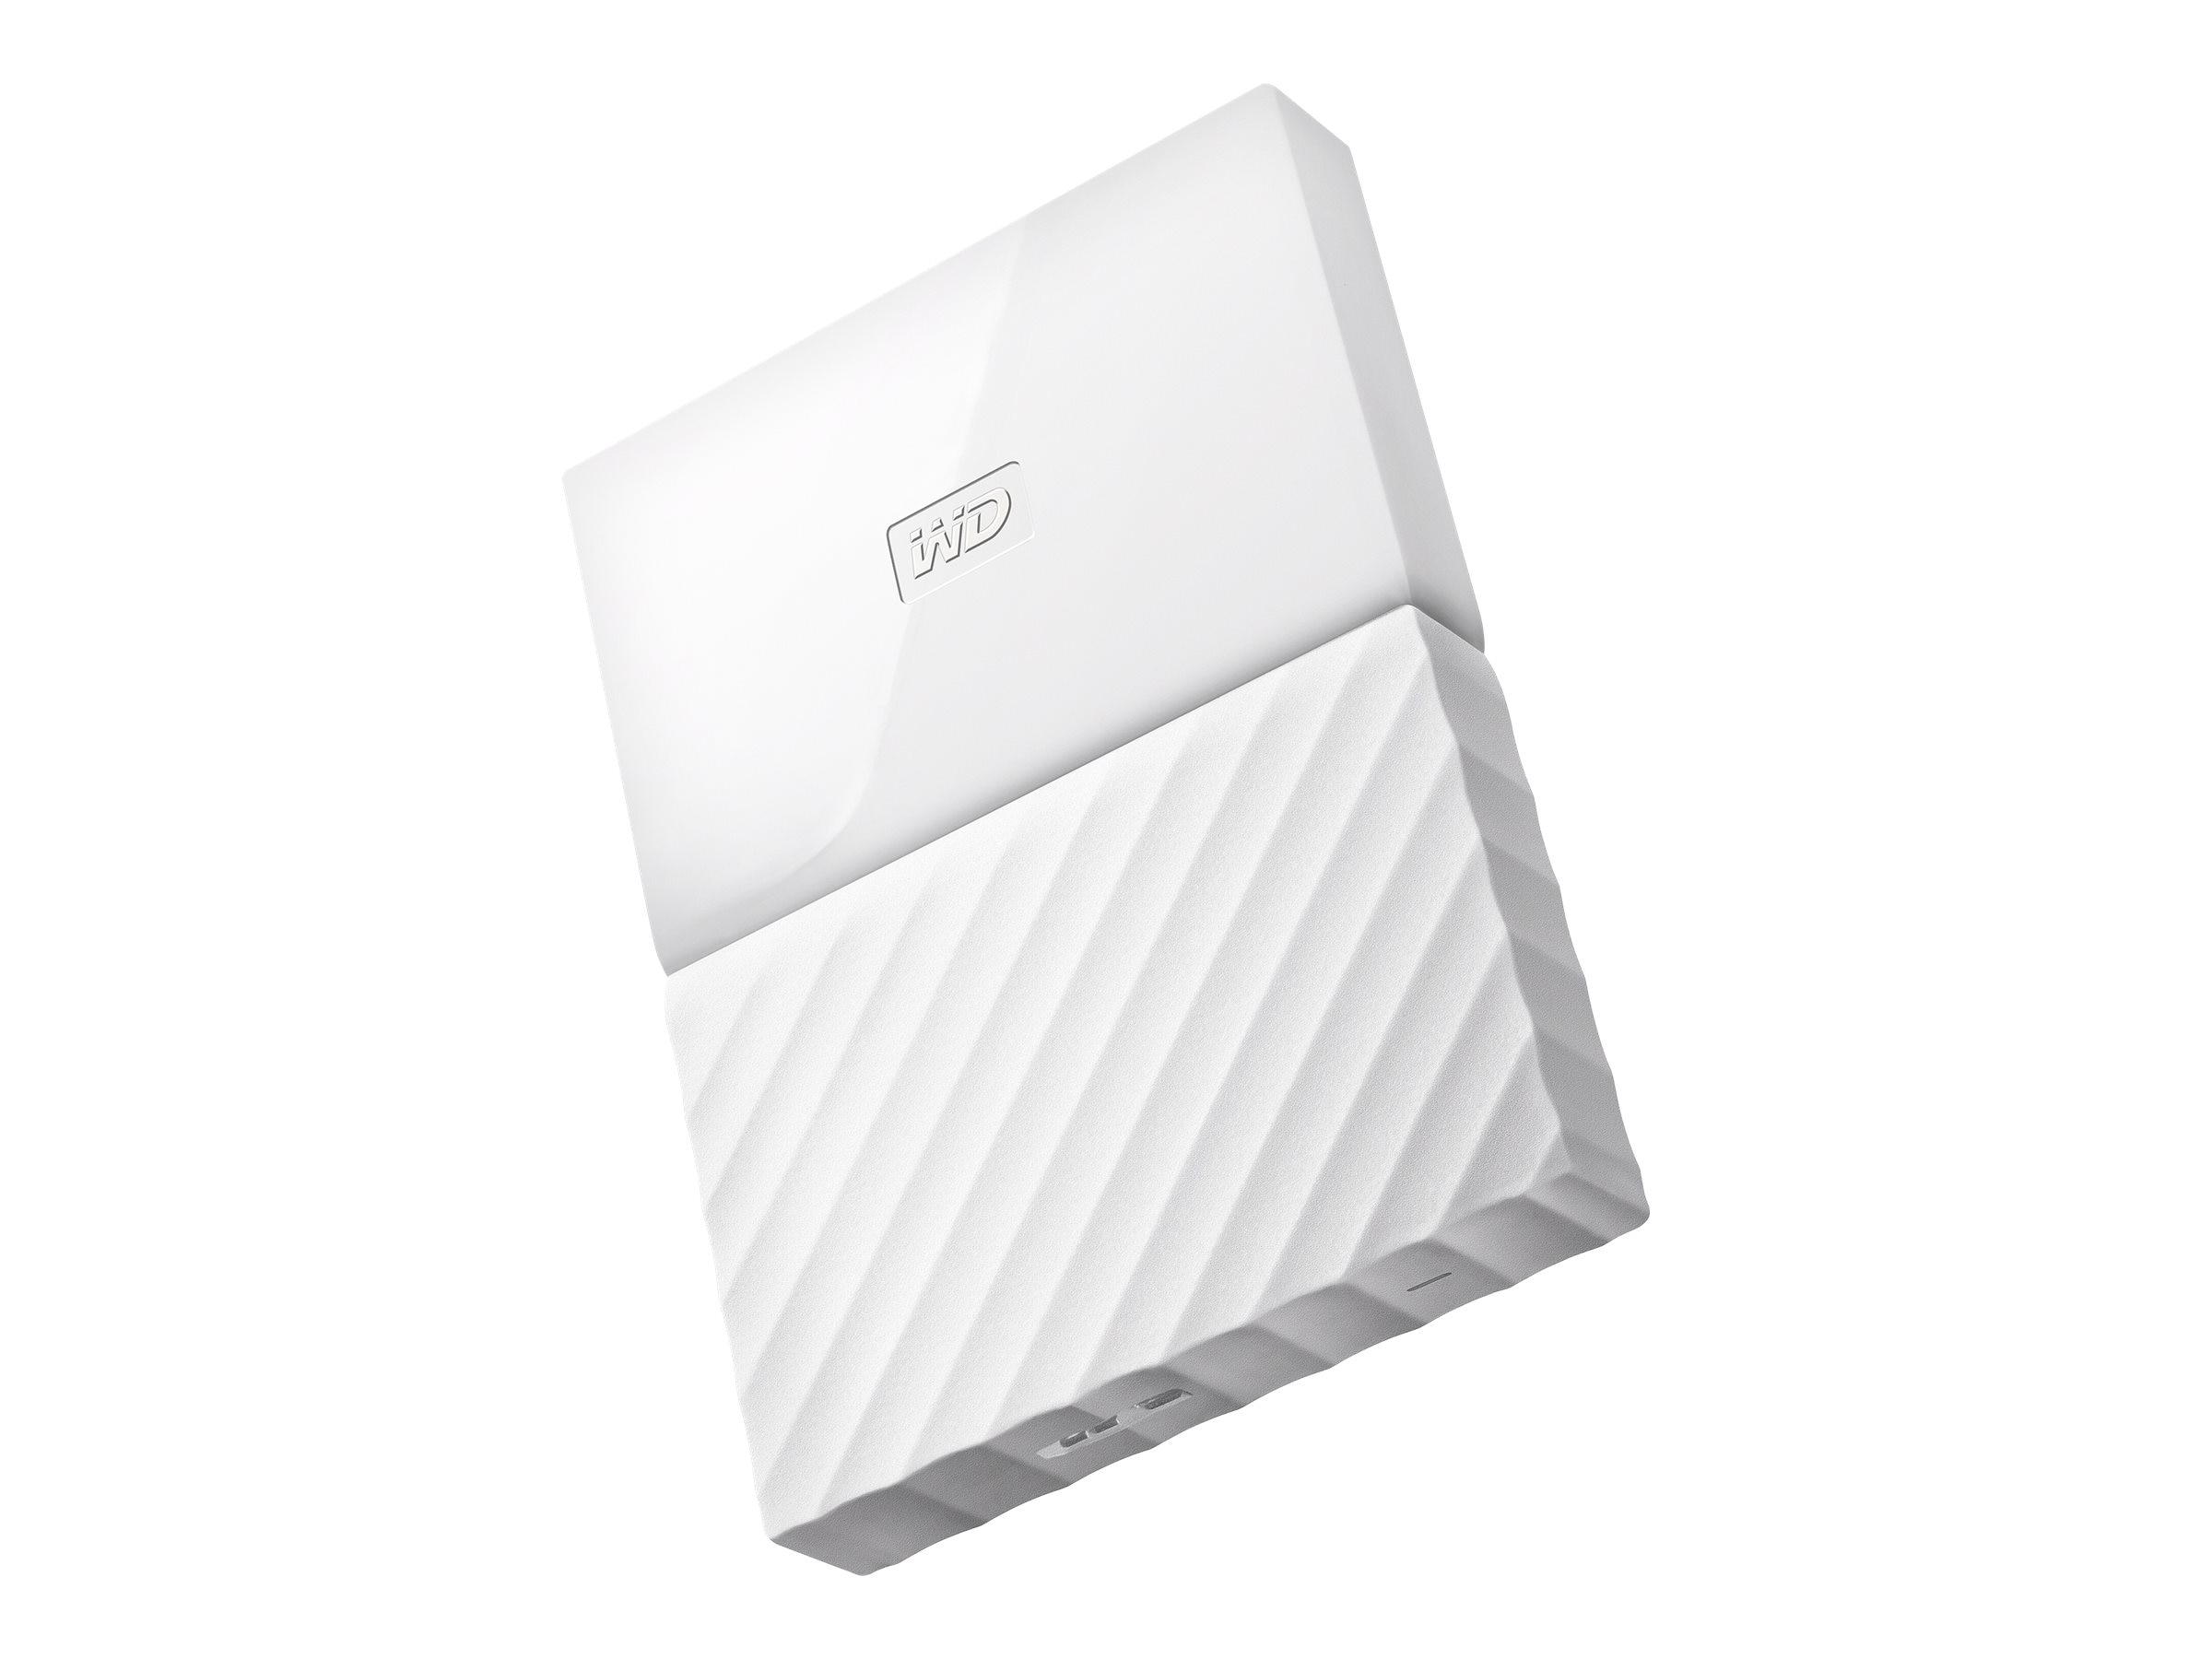 WD 2TB My Passport USB 3.0 Portable Hard Drive - White